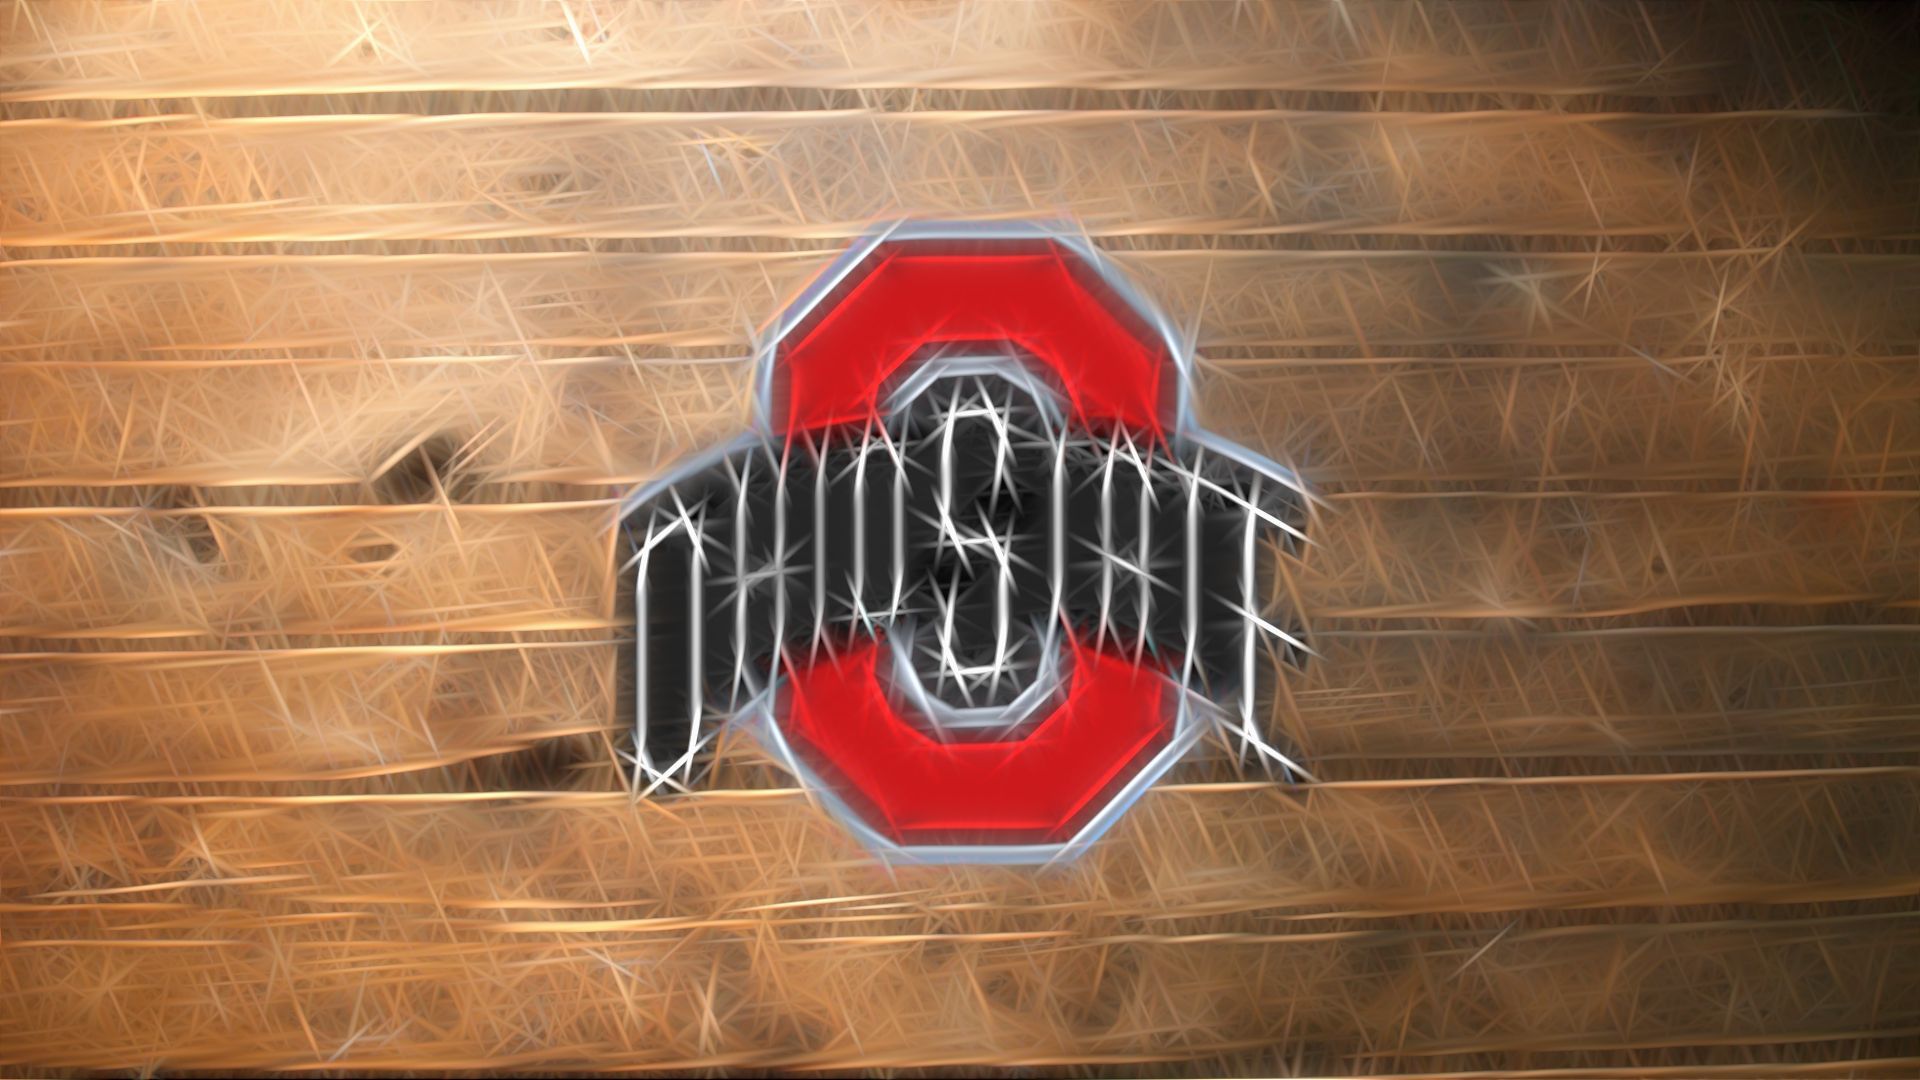 Osu Wallpaper 207 Ohio State Wallpaper Ohio State Ohio State Football